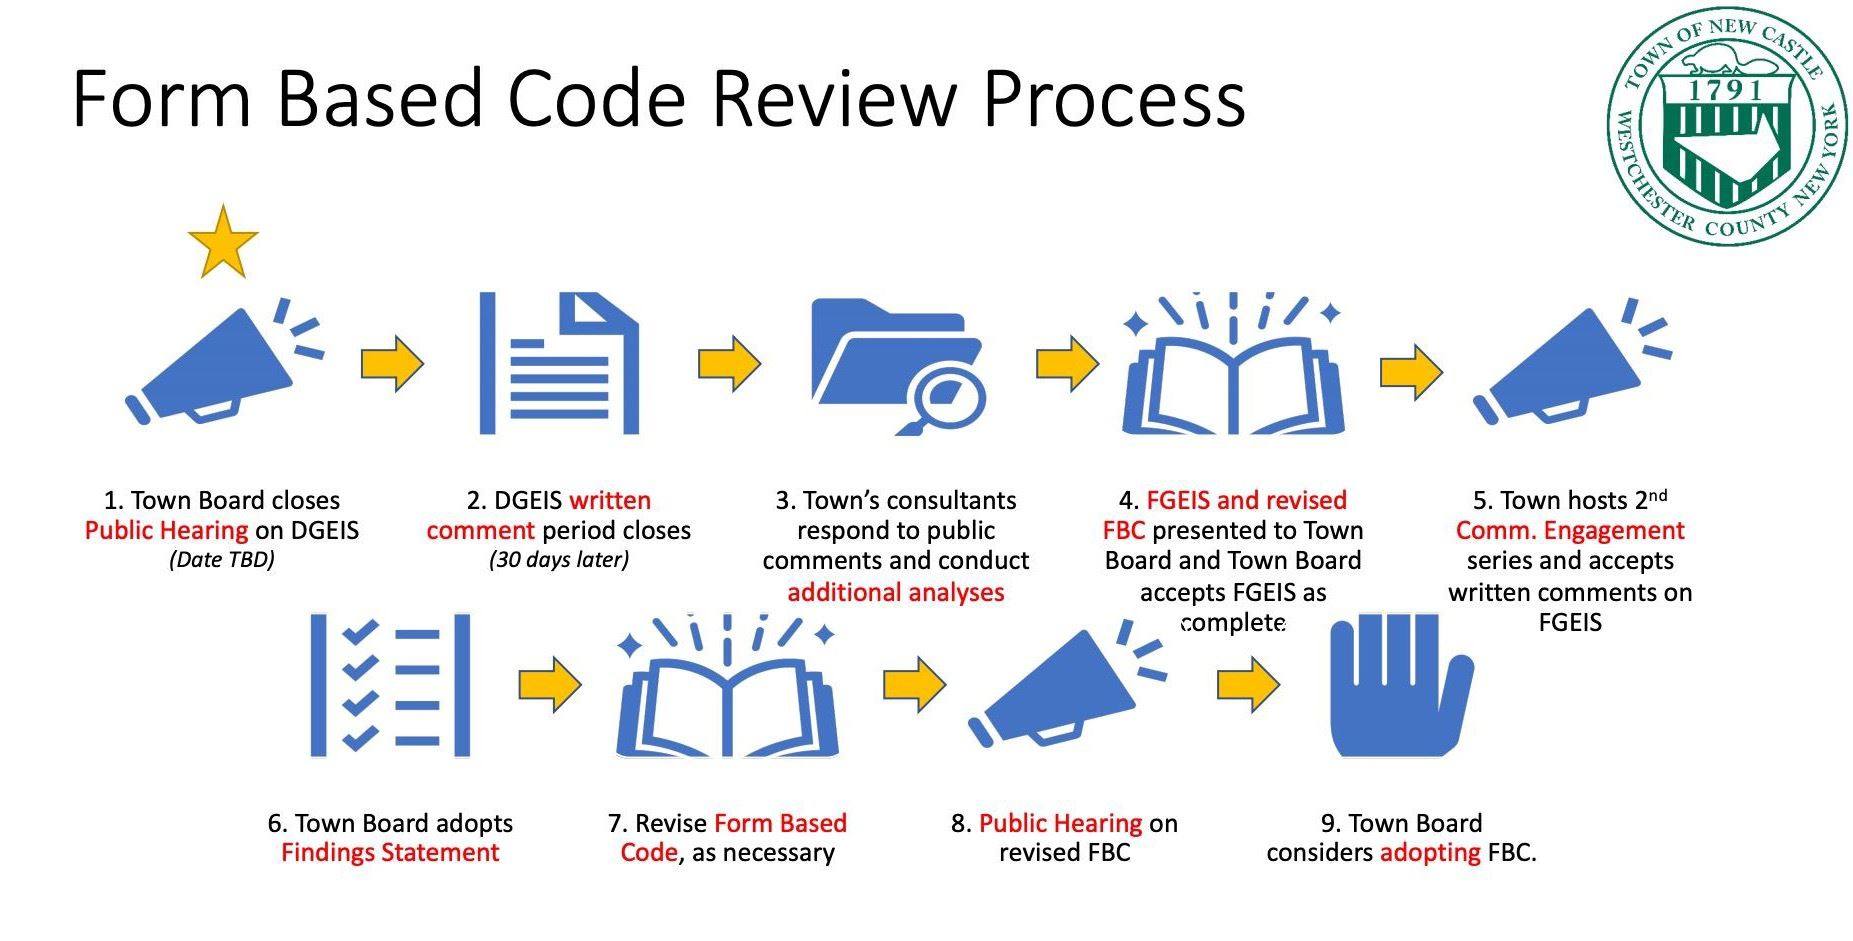 Illustrated Form Based Code Review Process